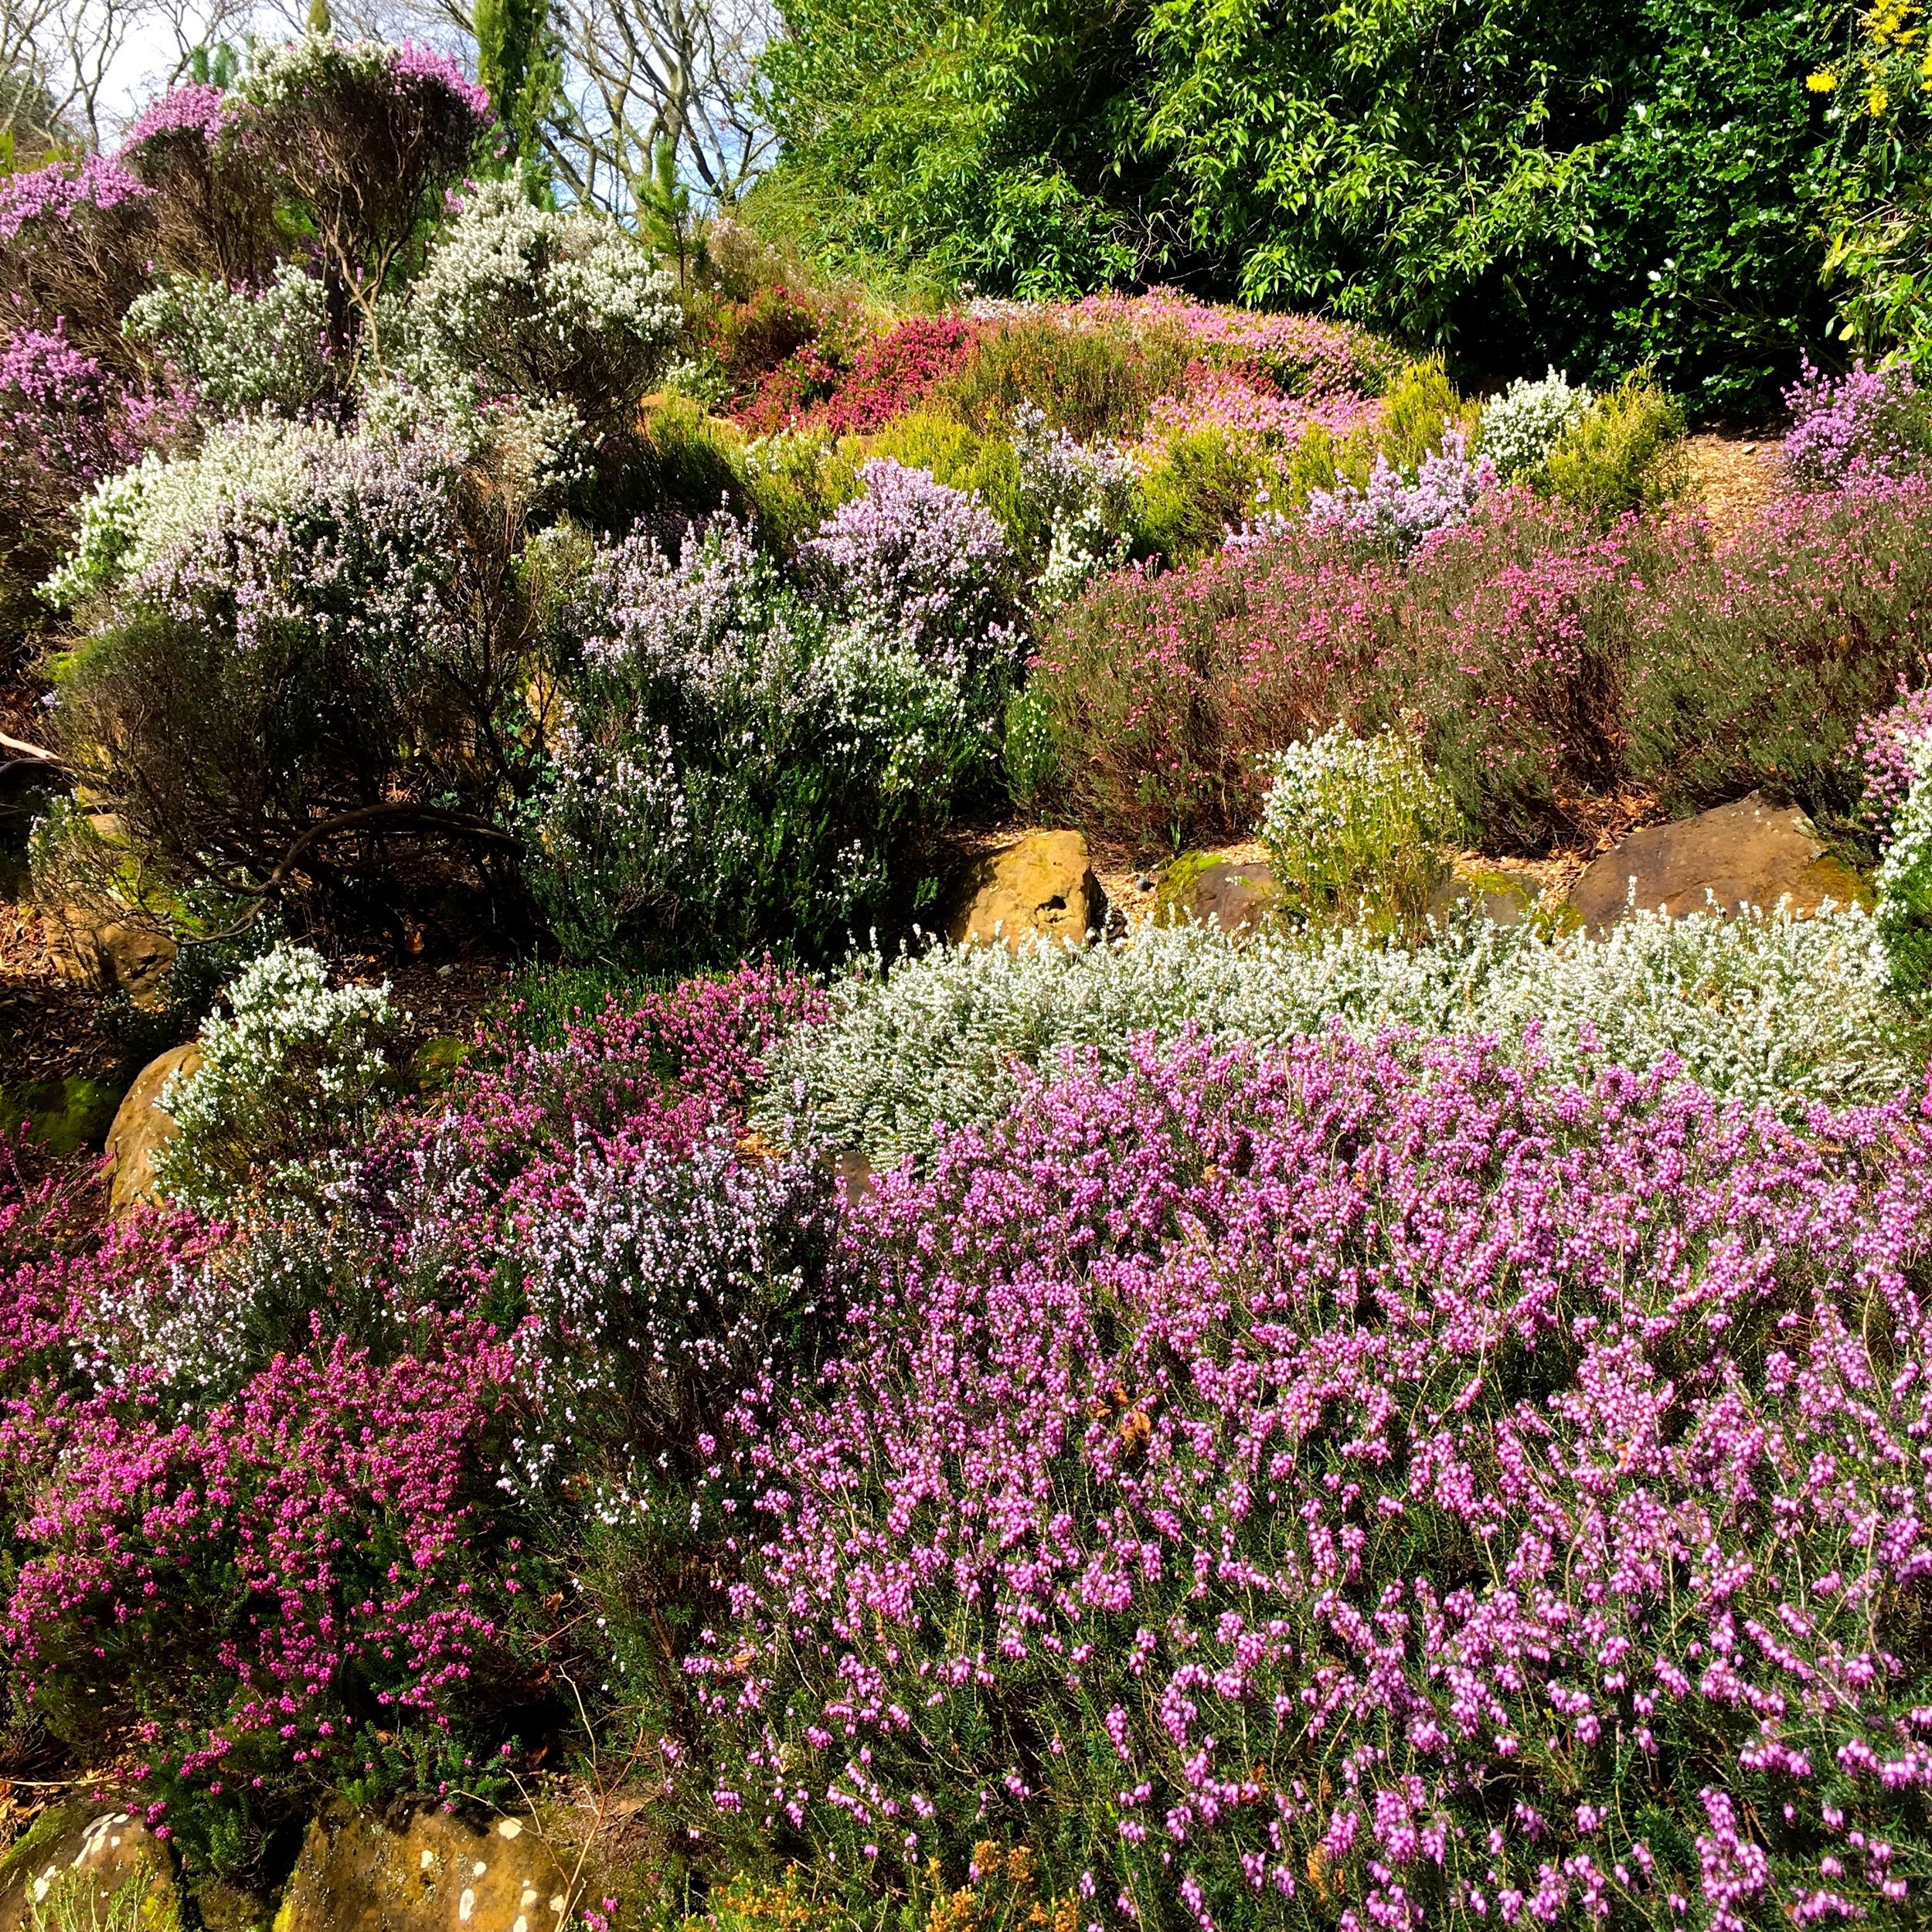 waves upon waves of heather at Compton Acres in Poole